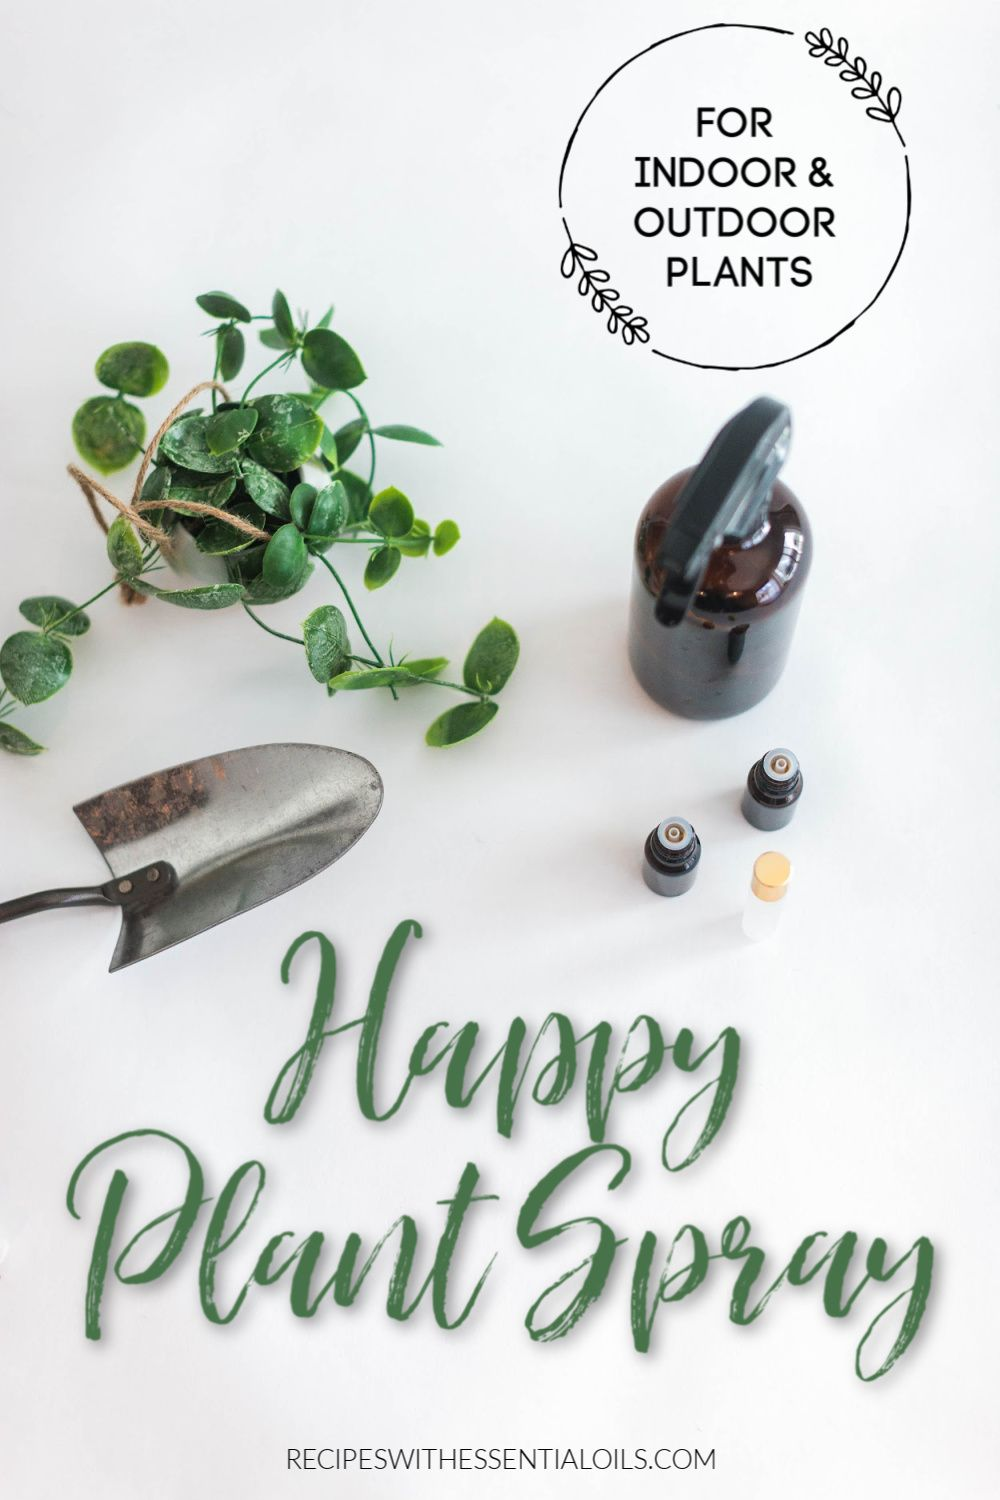 Natural Plant Spray for Indoor & Outdoor Plants in 2020